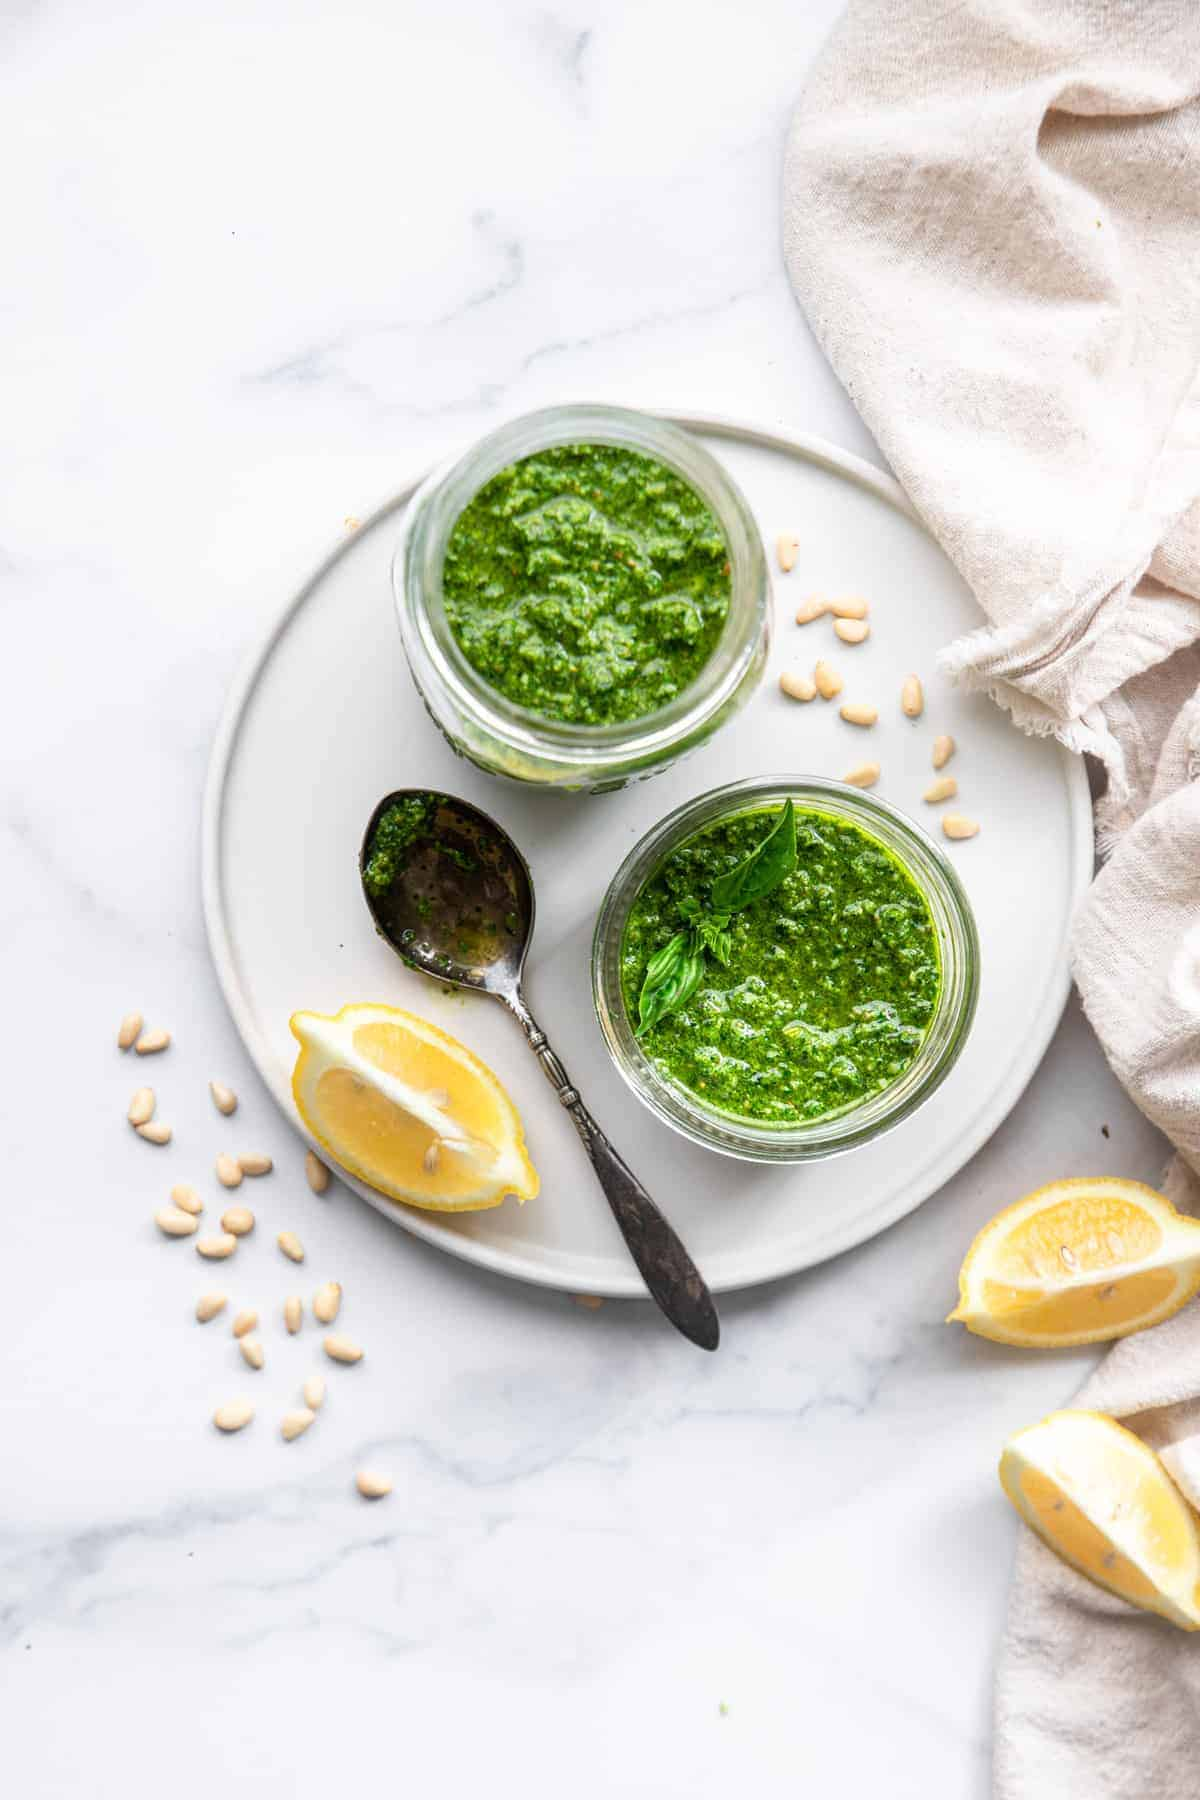 Spinach pesto sauce overview on a serving plate with lemon and a spoon